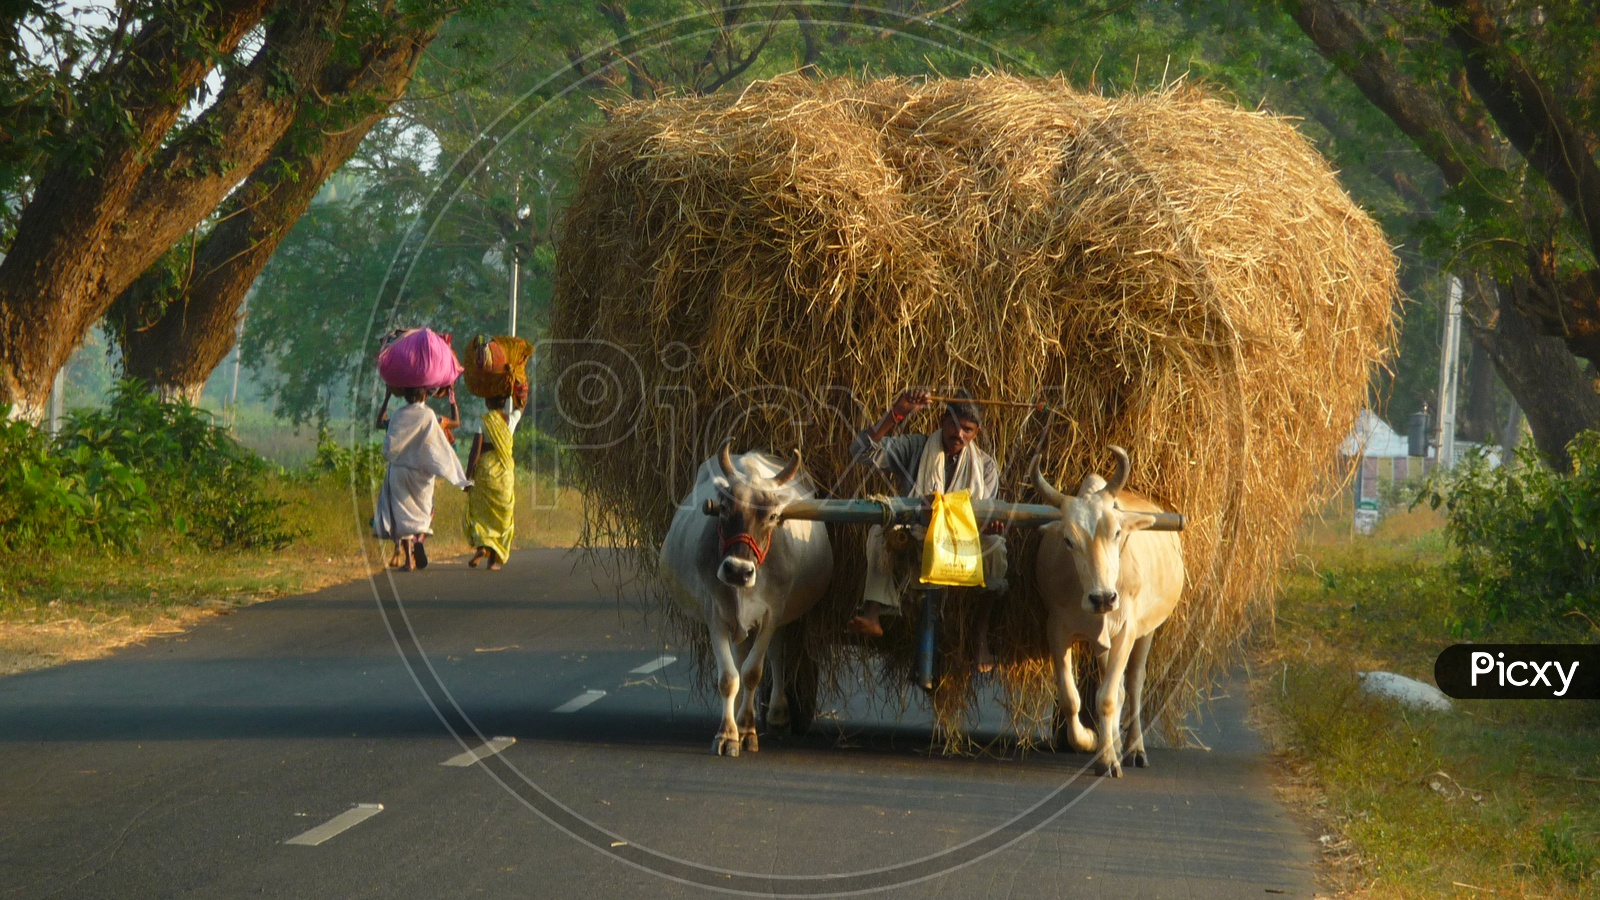 Bullock cart with Grass load